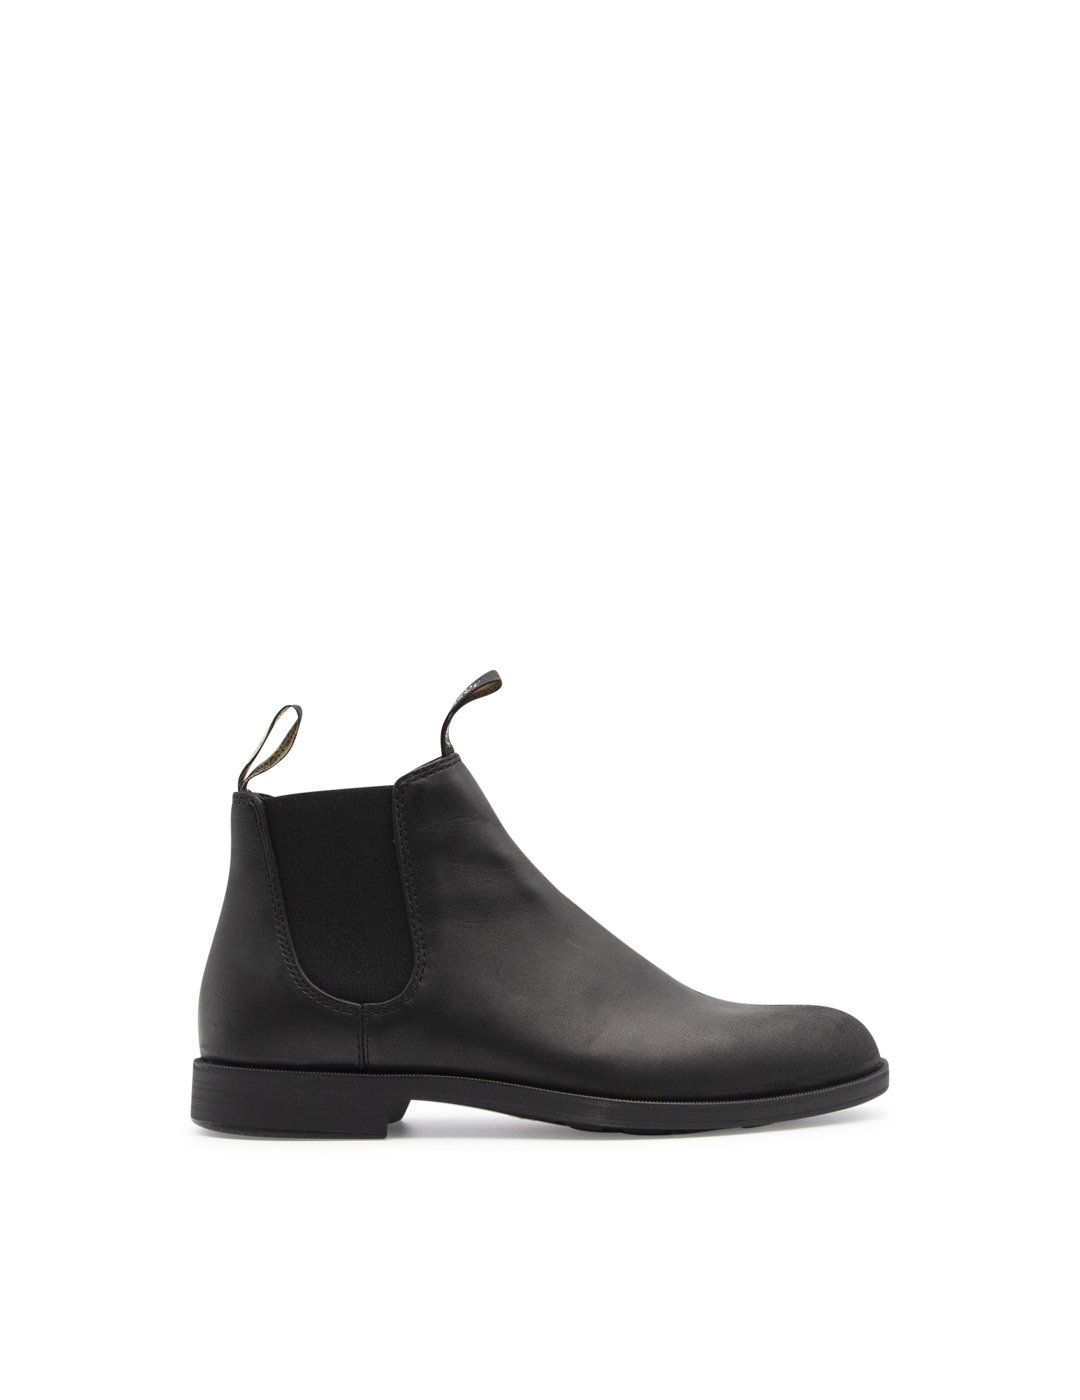 Blundstone Leathers BLUNDSTONE MEN'S 1901BLACK BLACK LEATHER ANKLE BOOTS